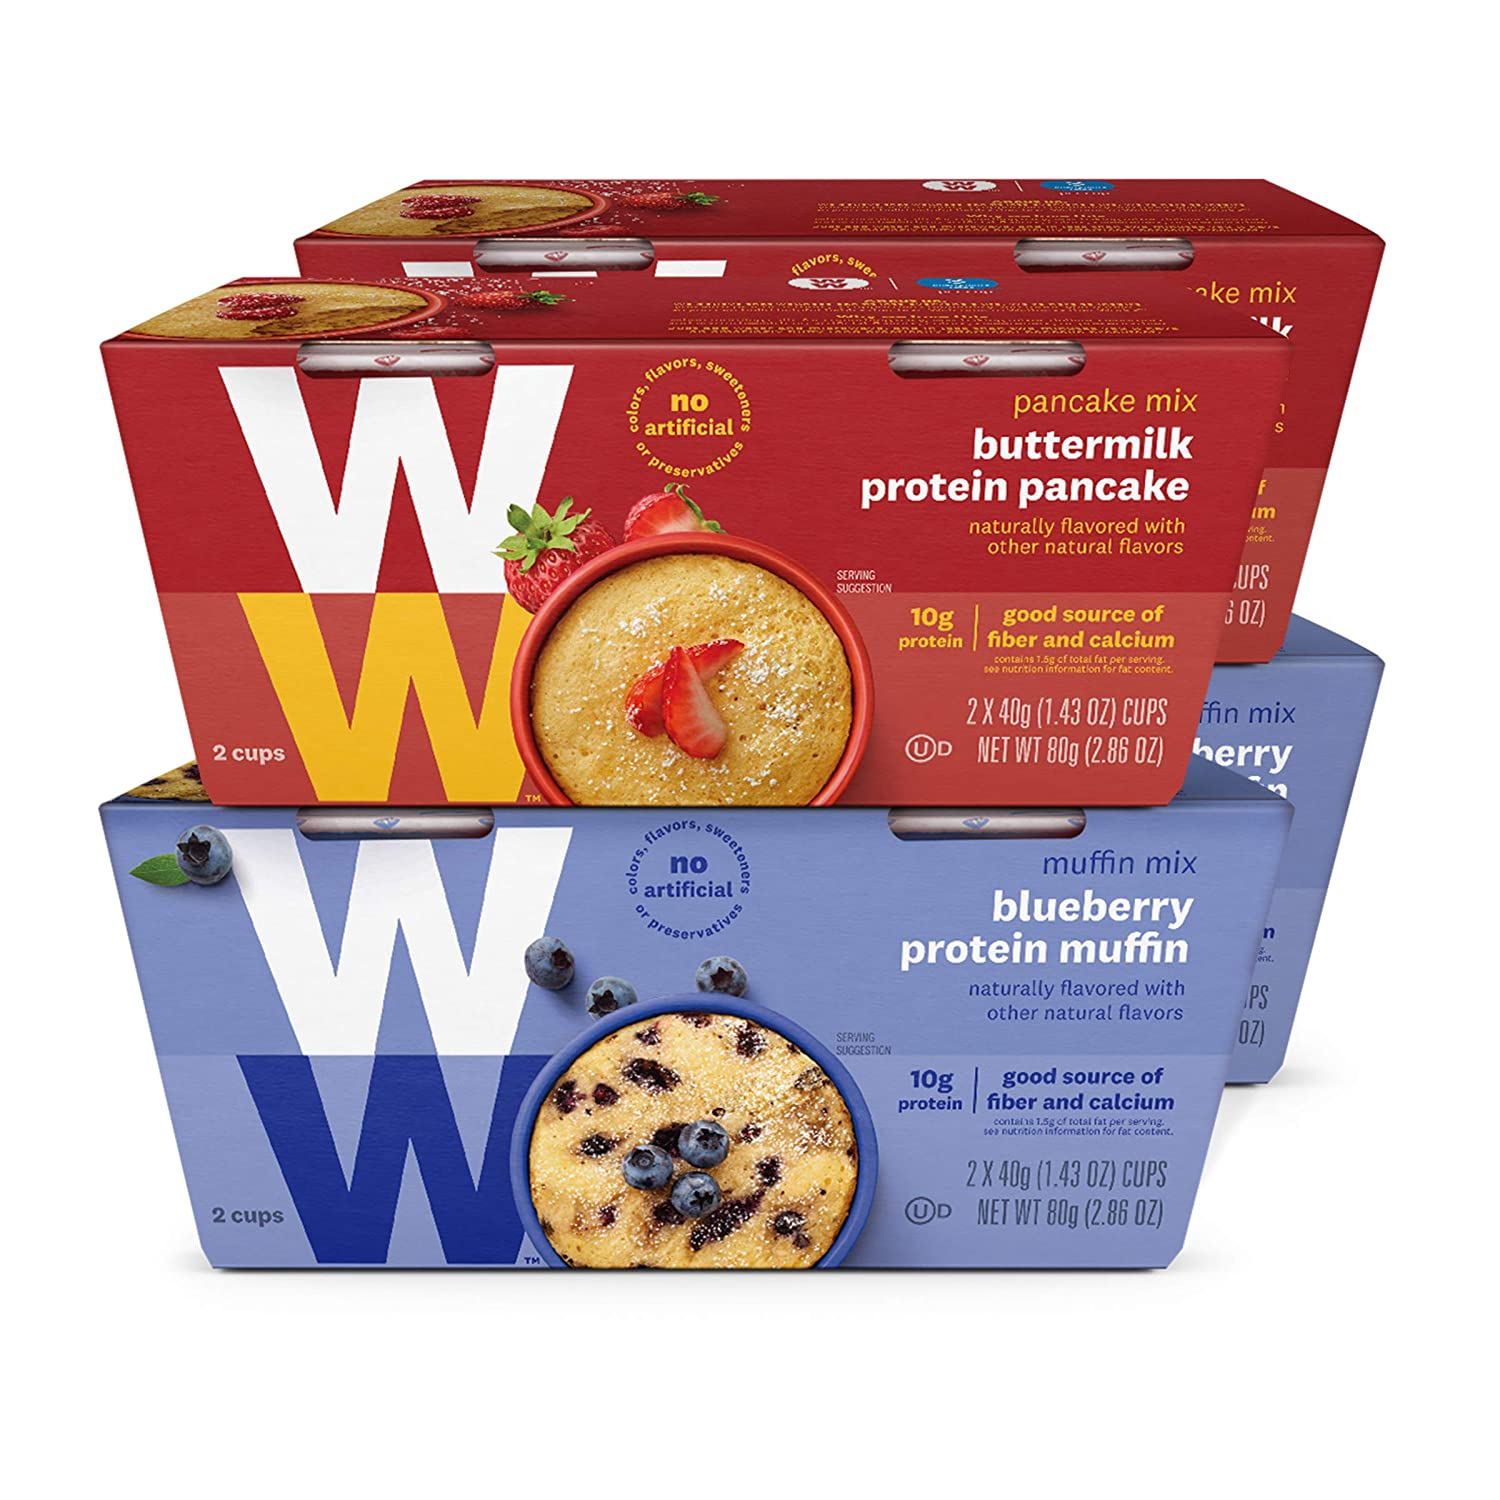 WW Breakfast Mug Cake Variety Pack - Blueberry Muffin & Buttermilk Protein Pancake - High Protein, 3 SmartPoints - 4 Boxes (8 Count Total) - Weight Watchers Reimagined